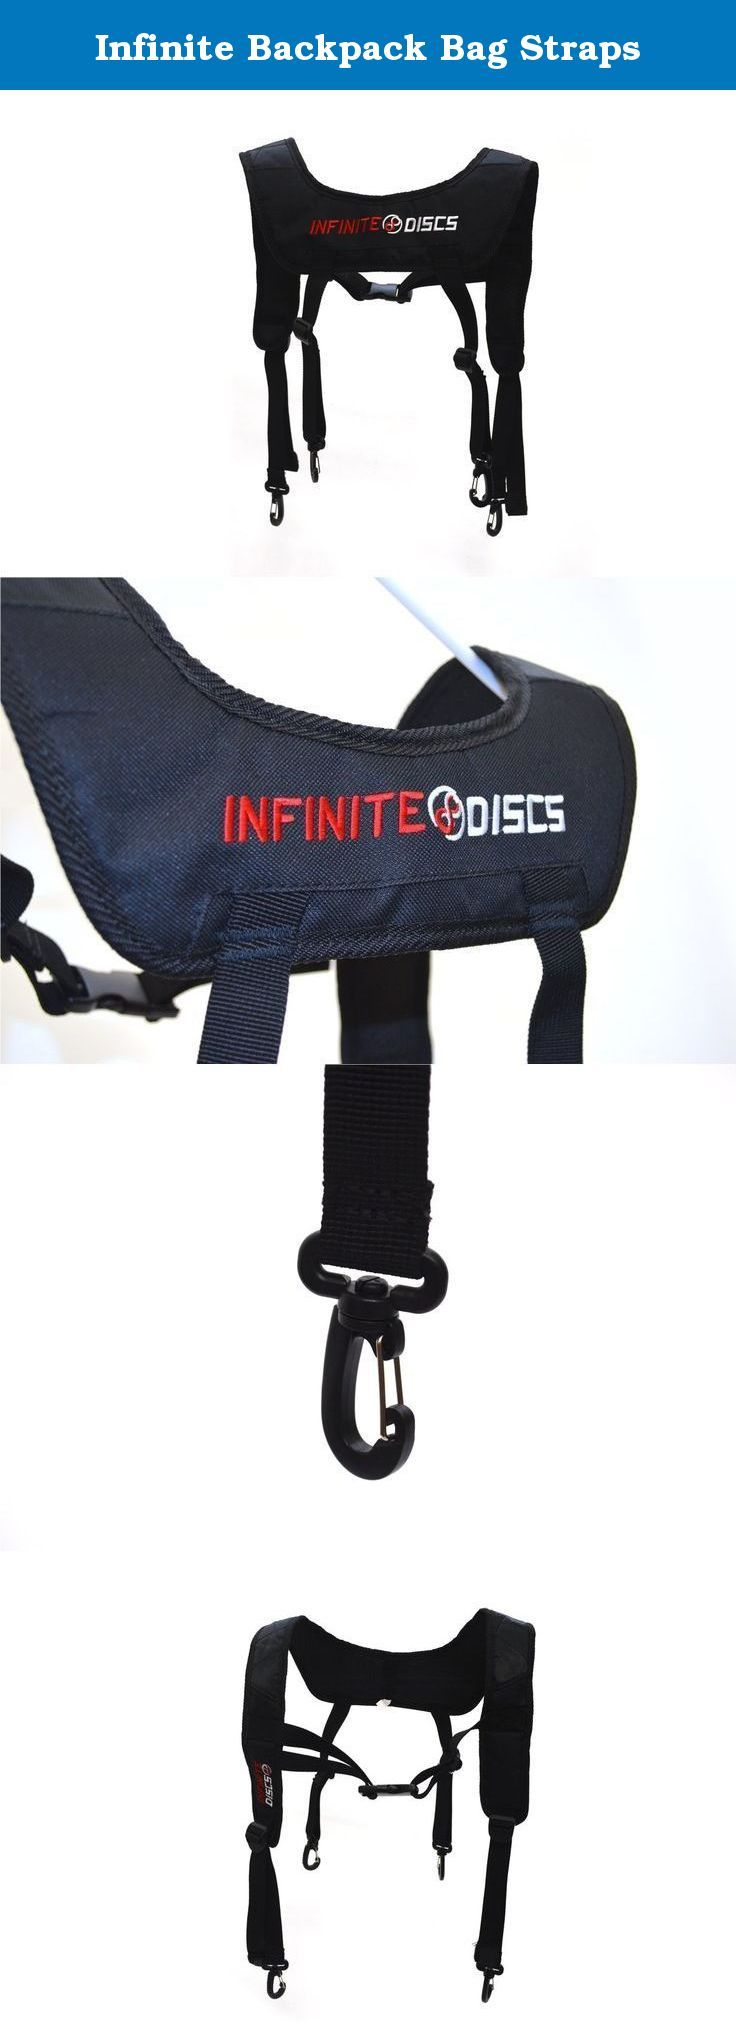 Infinite Backpack Bag Straps. The Infinite Discs straps provide the perfect way to lighten the load of heavy disc golf bags. Make carrying that full bag easier while showing your support of your favorite online disc golf retailer.